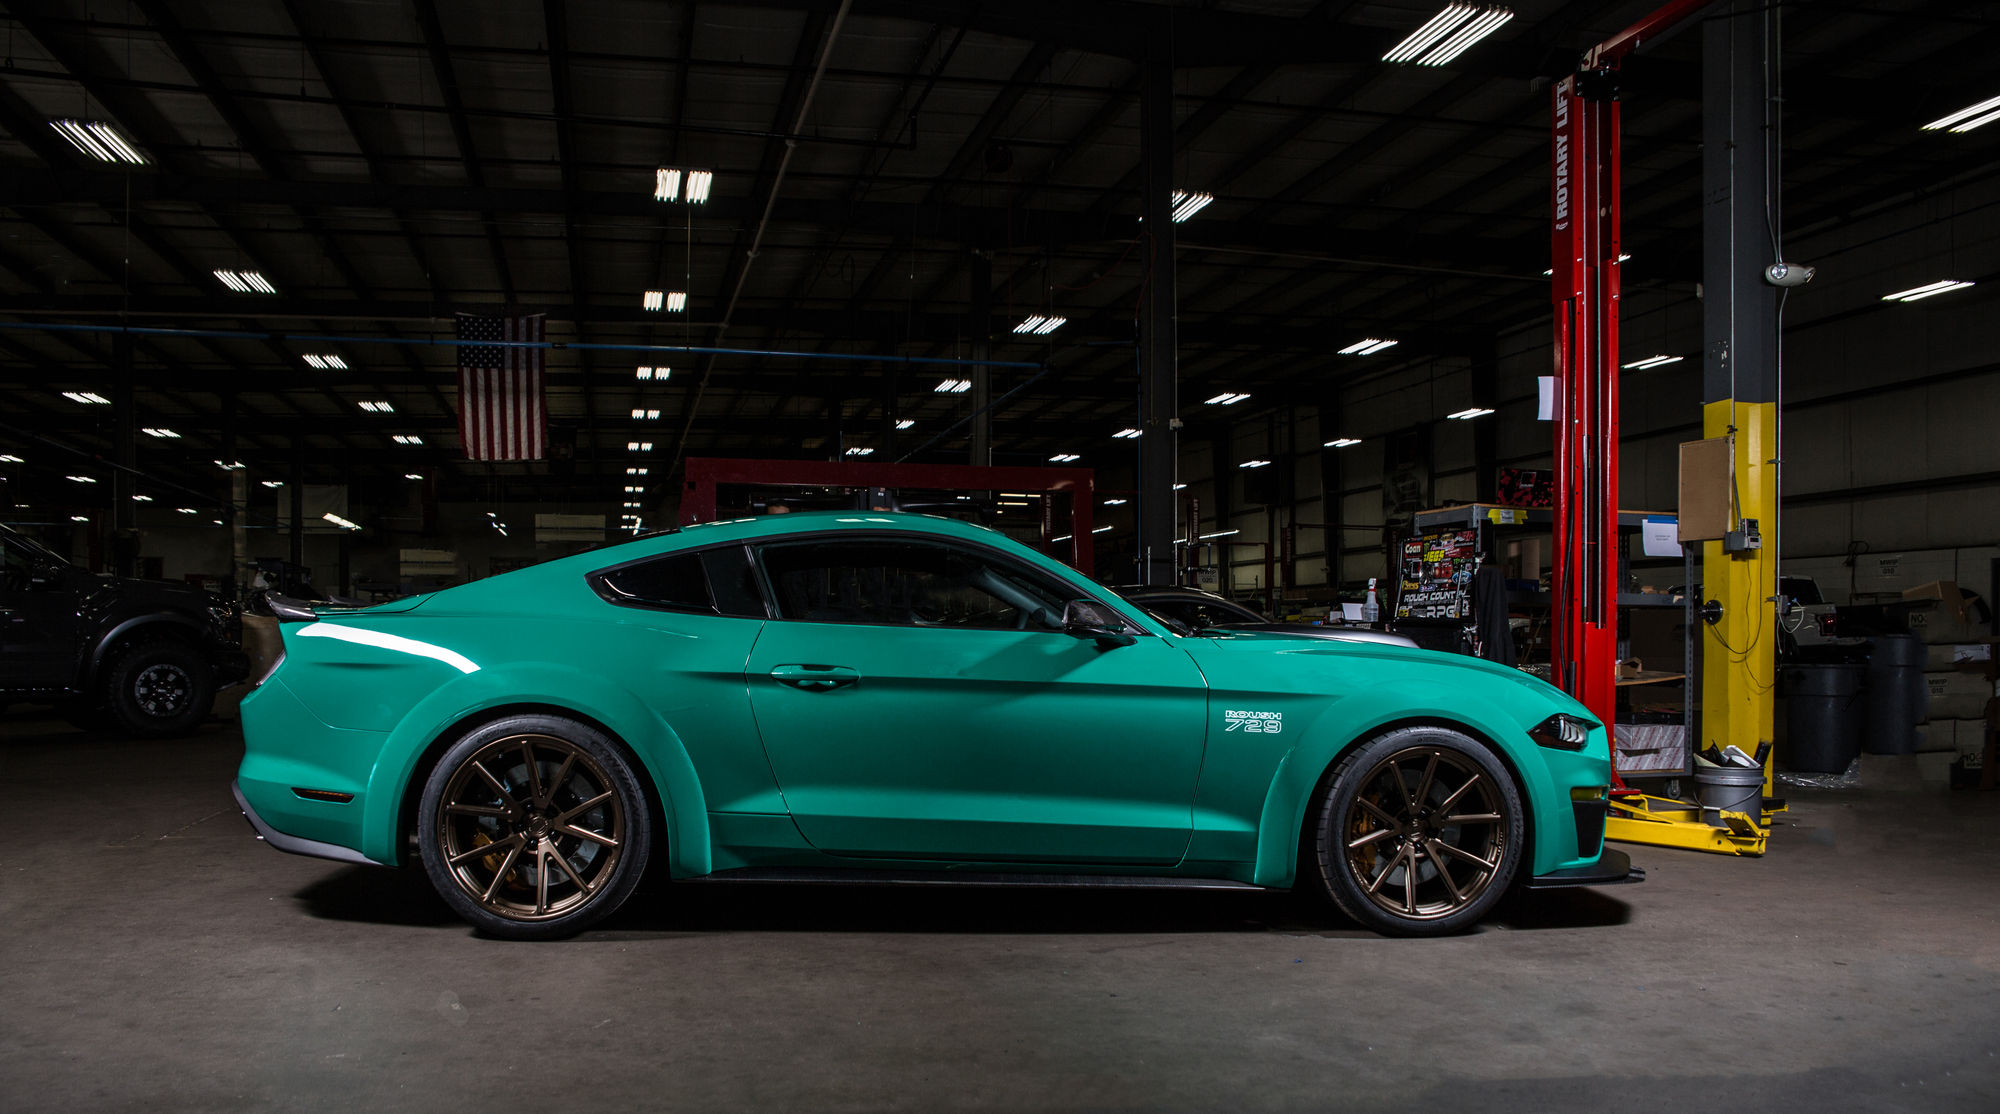 Roush 729 Widebody Mustang by Roush Performance Side Stance FordSEMA